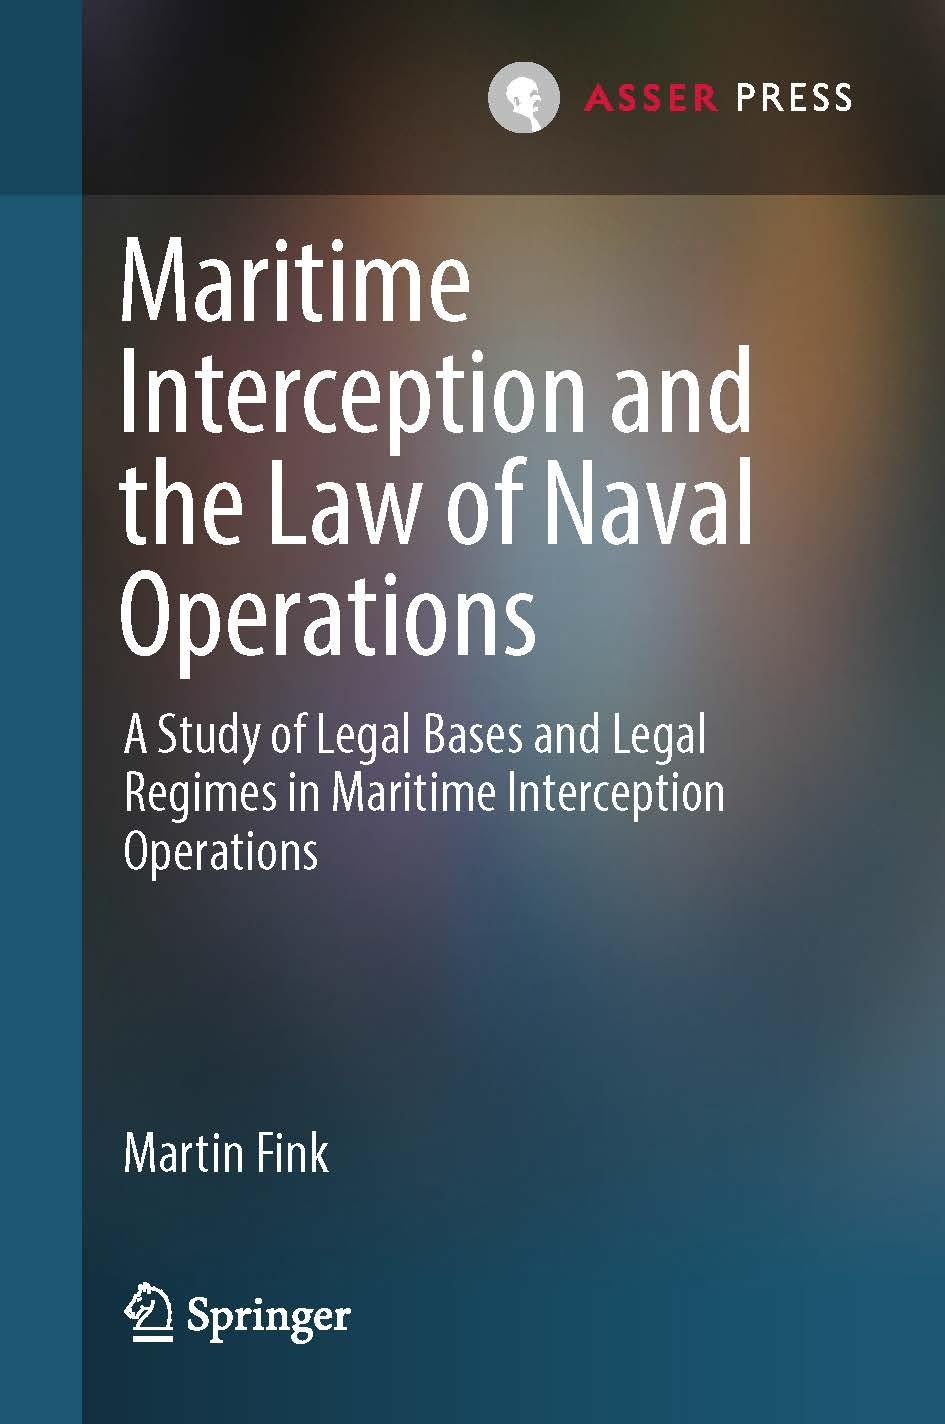 Maritime Interception and the Law of Naval Operations